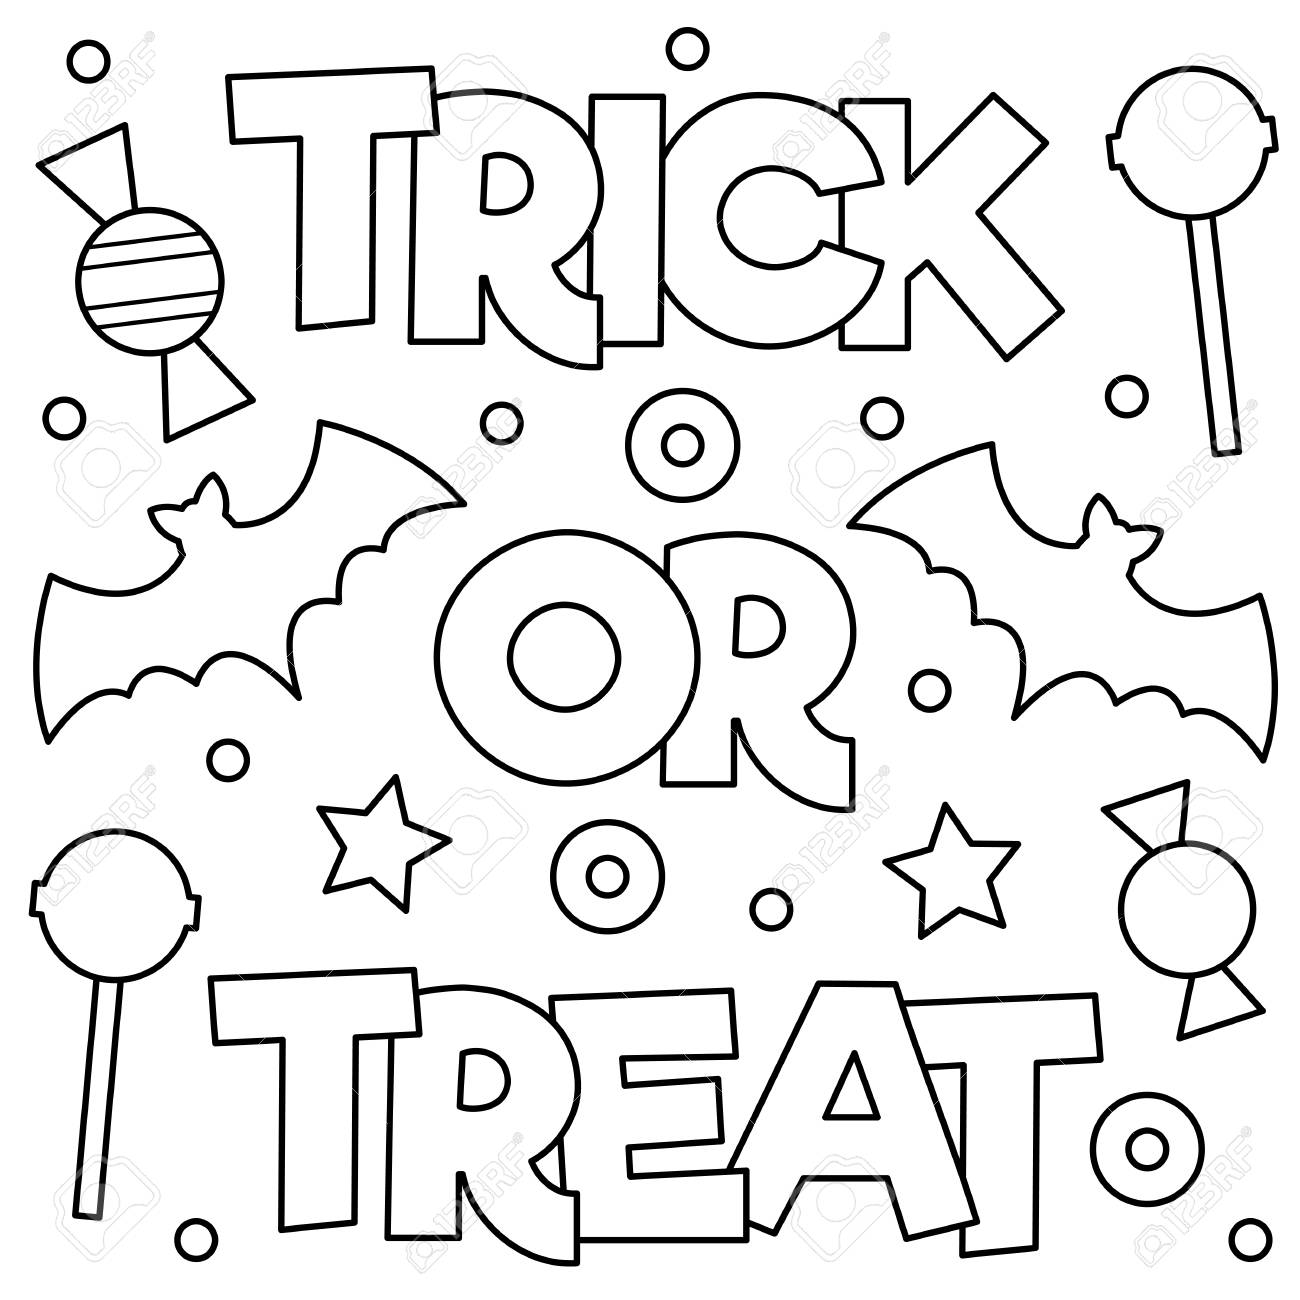 Hermosa Palabras De Trick Or Treat Para Colorear Elaboración - Ideas ...